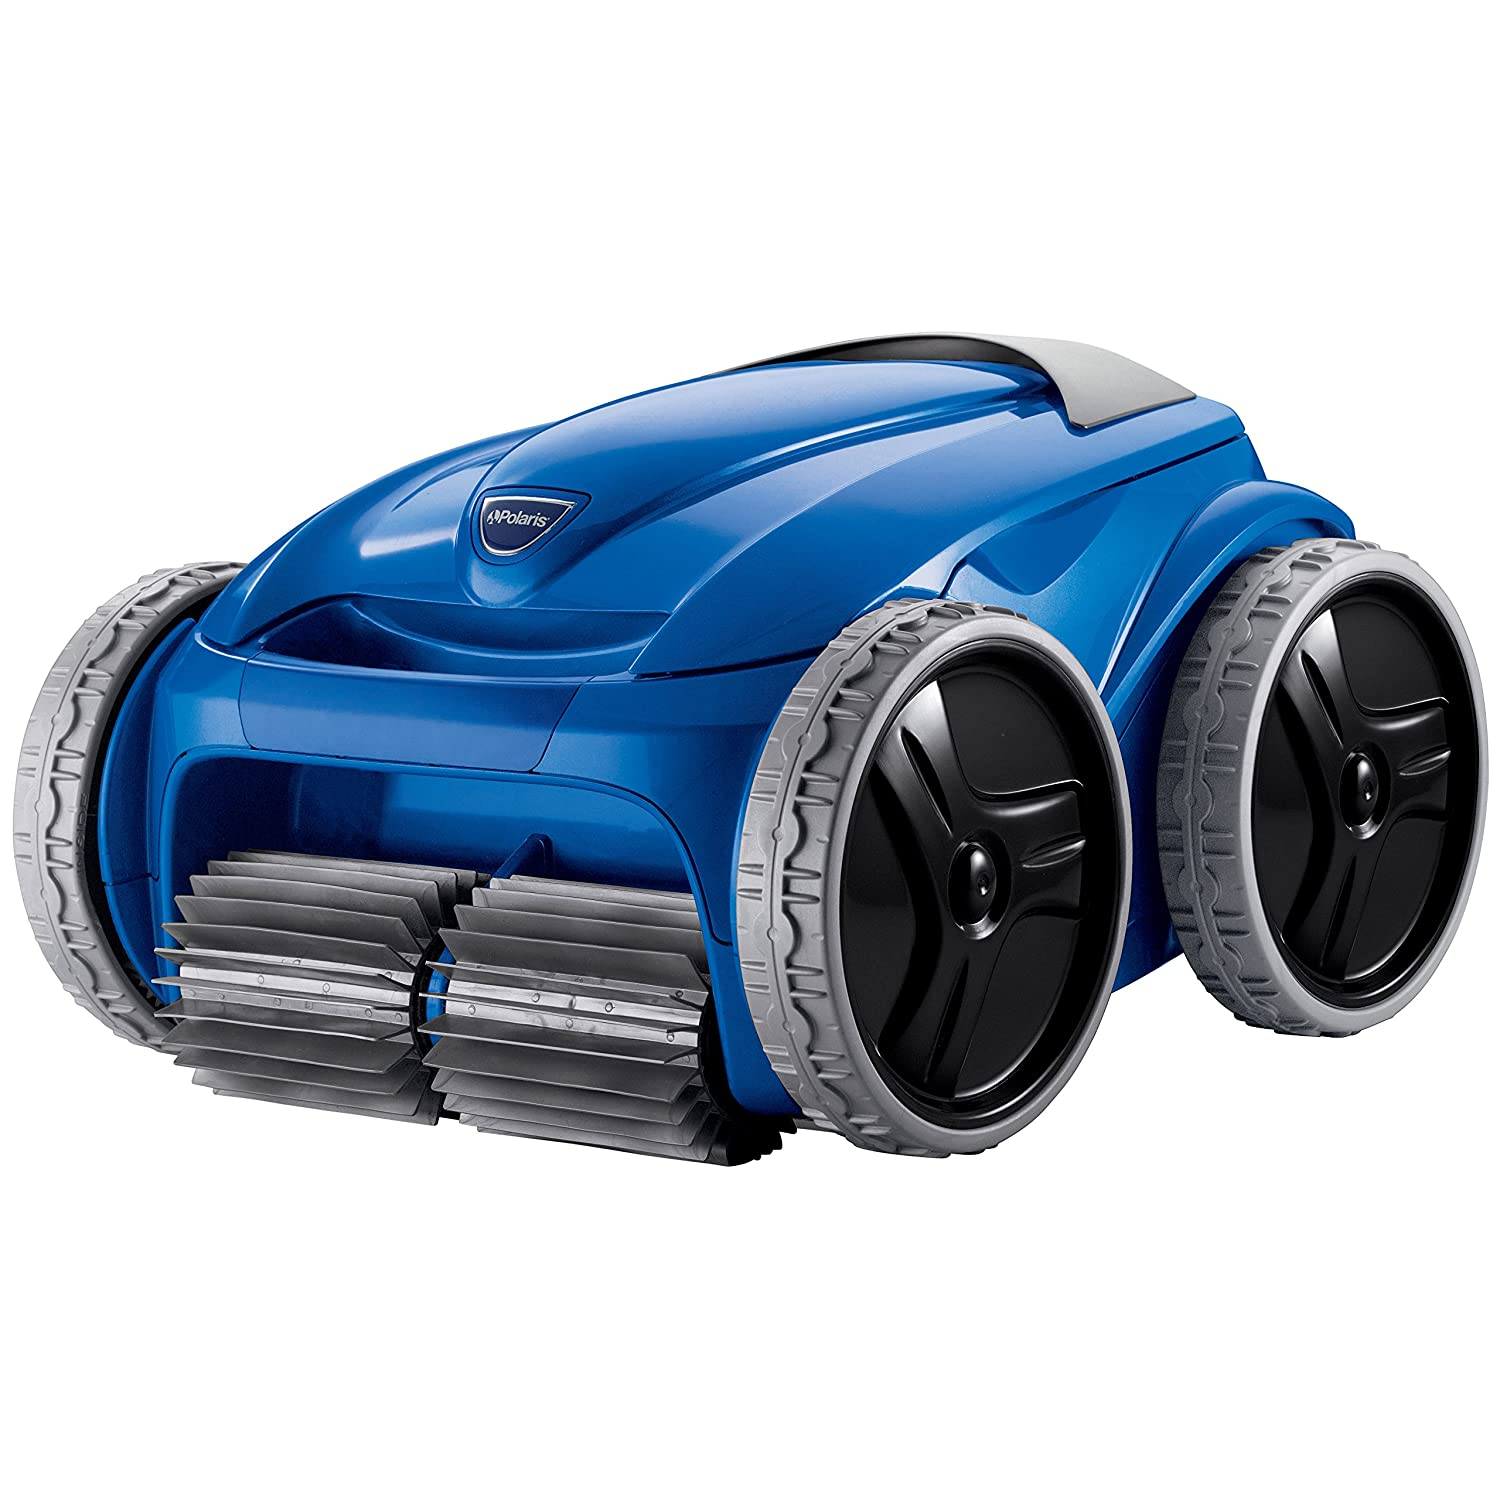 Top 10 best robotic pool cleaners 2016 2017 on flipboard for Best pool vacuum